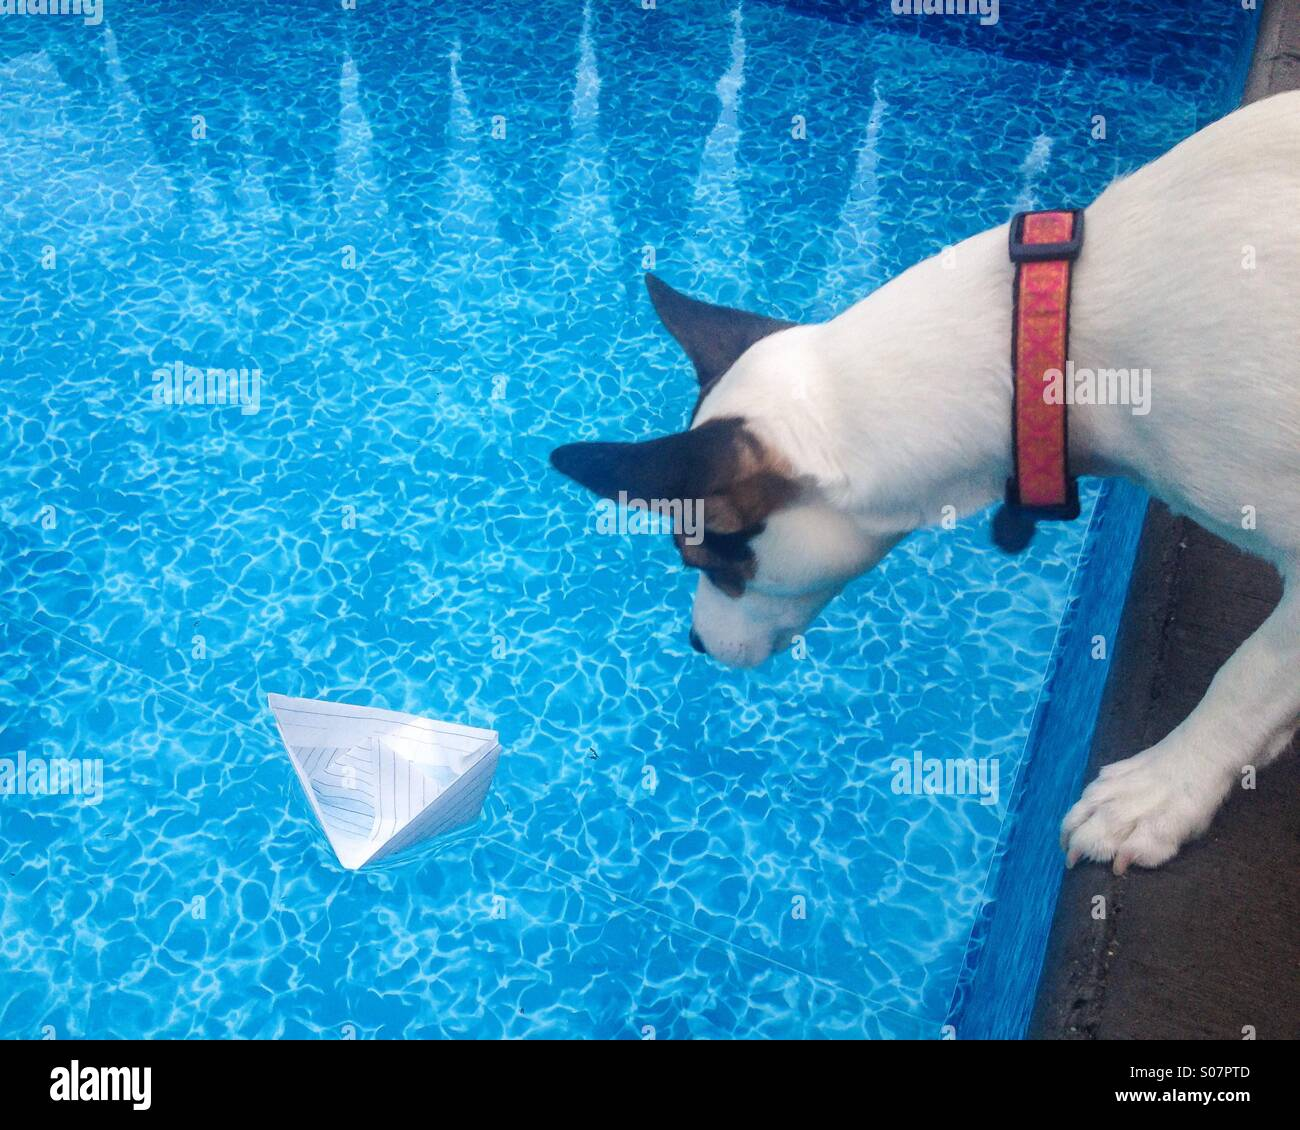 Daisy and the boat pt1. Daisy the Jack Russell Terrier is quite intrigued by the paper boat floating in the pool. - Stock Image